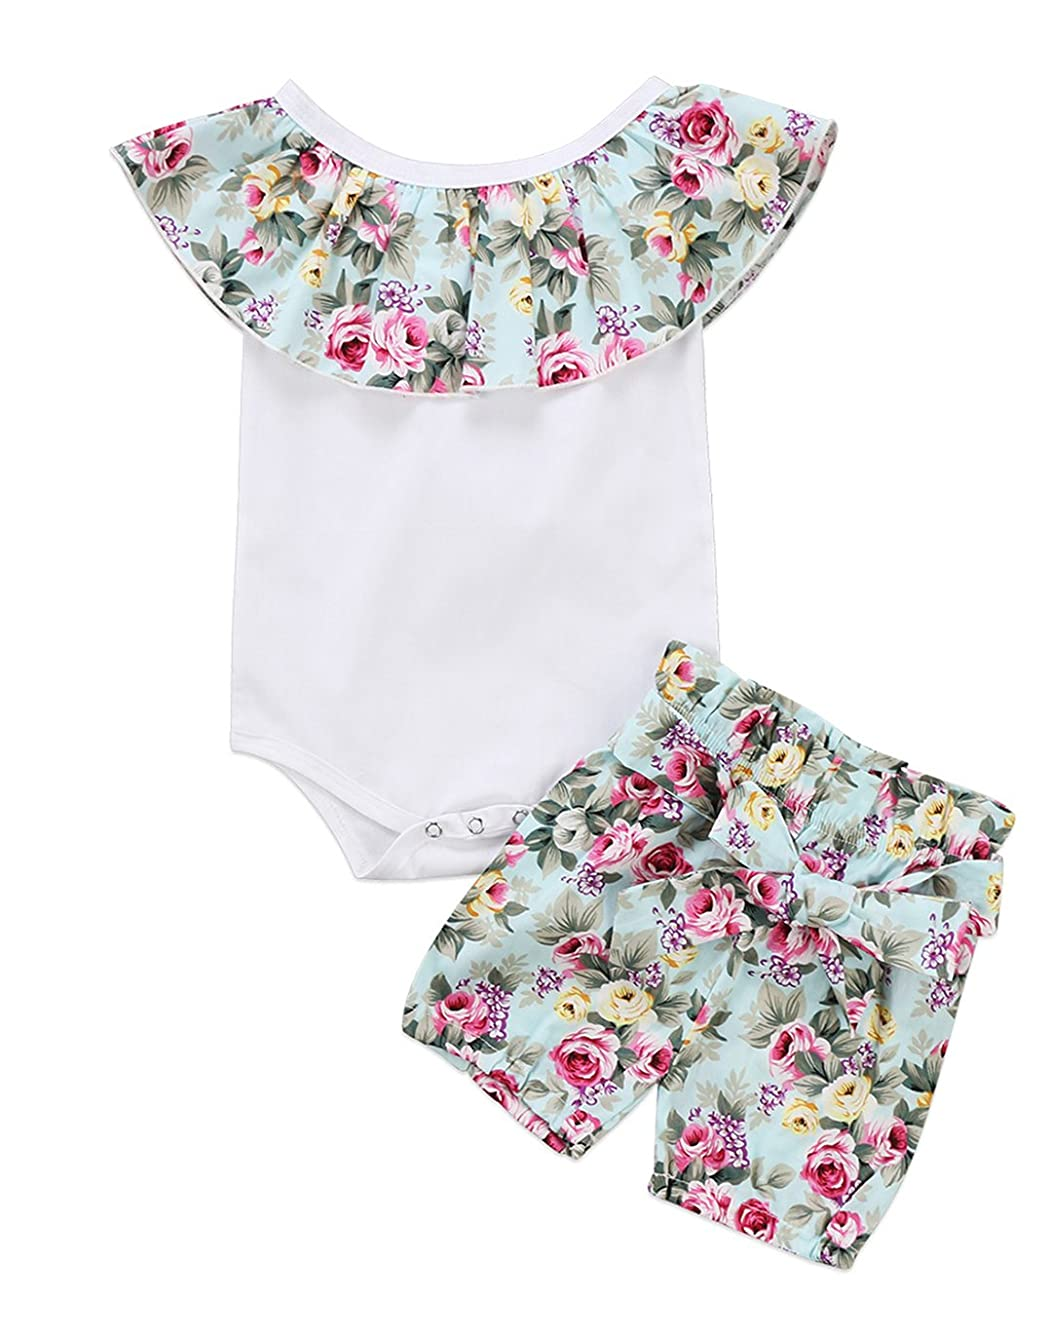 Urkutoba Cute Baby Girl 2pcs Lotus Ruffle Collar Sleeveless Floral Romper+Bowtie Short Pants Outfit Set